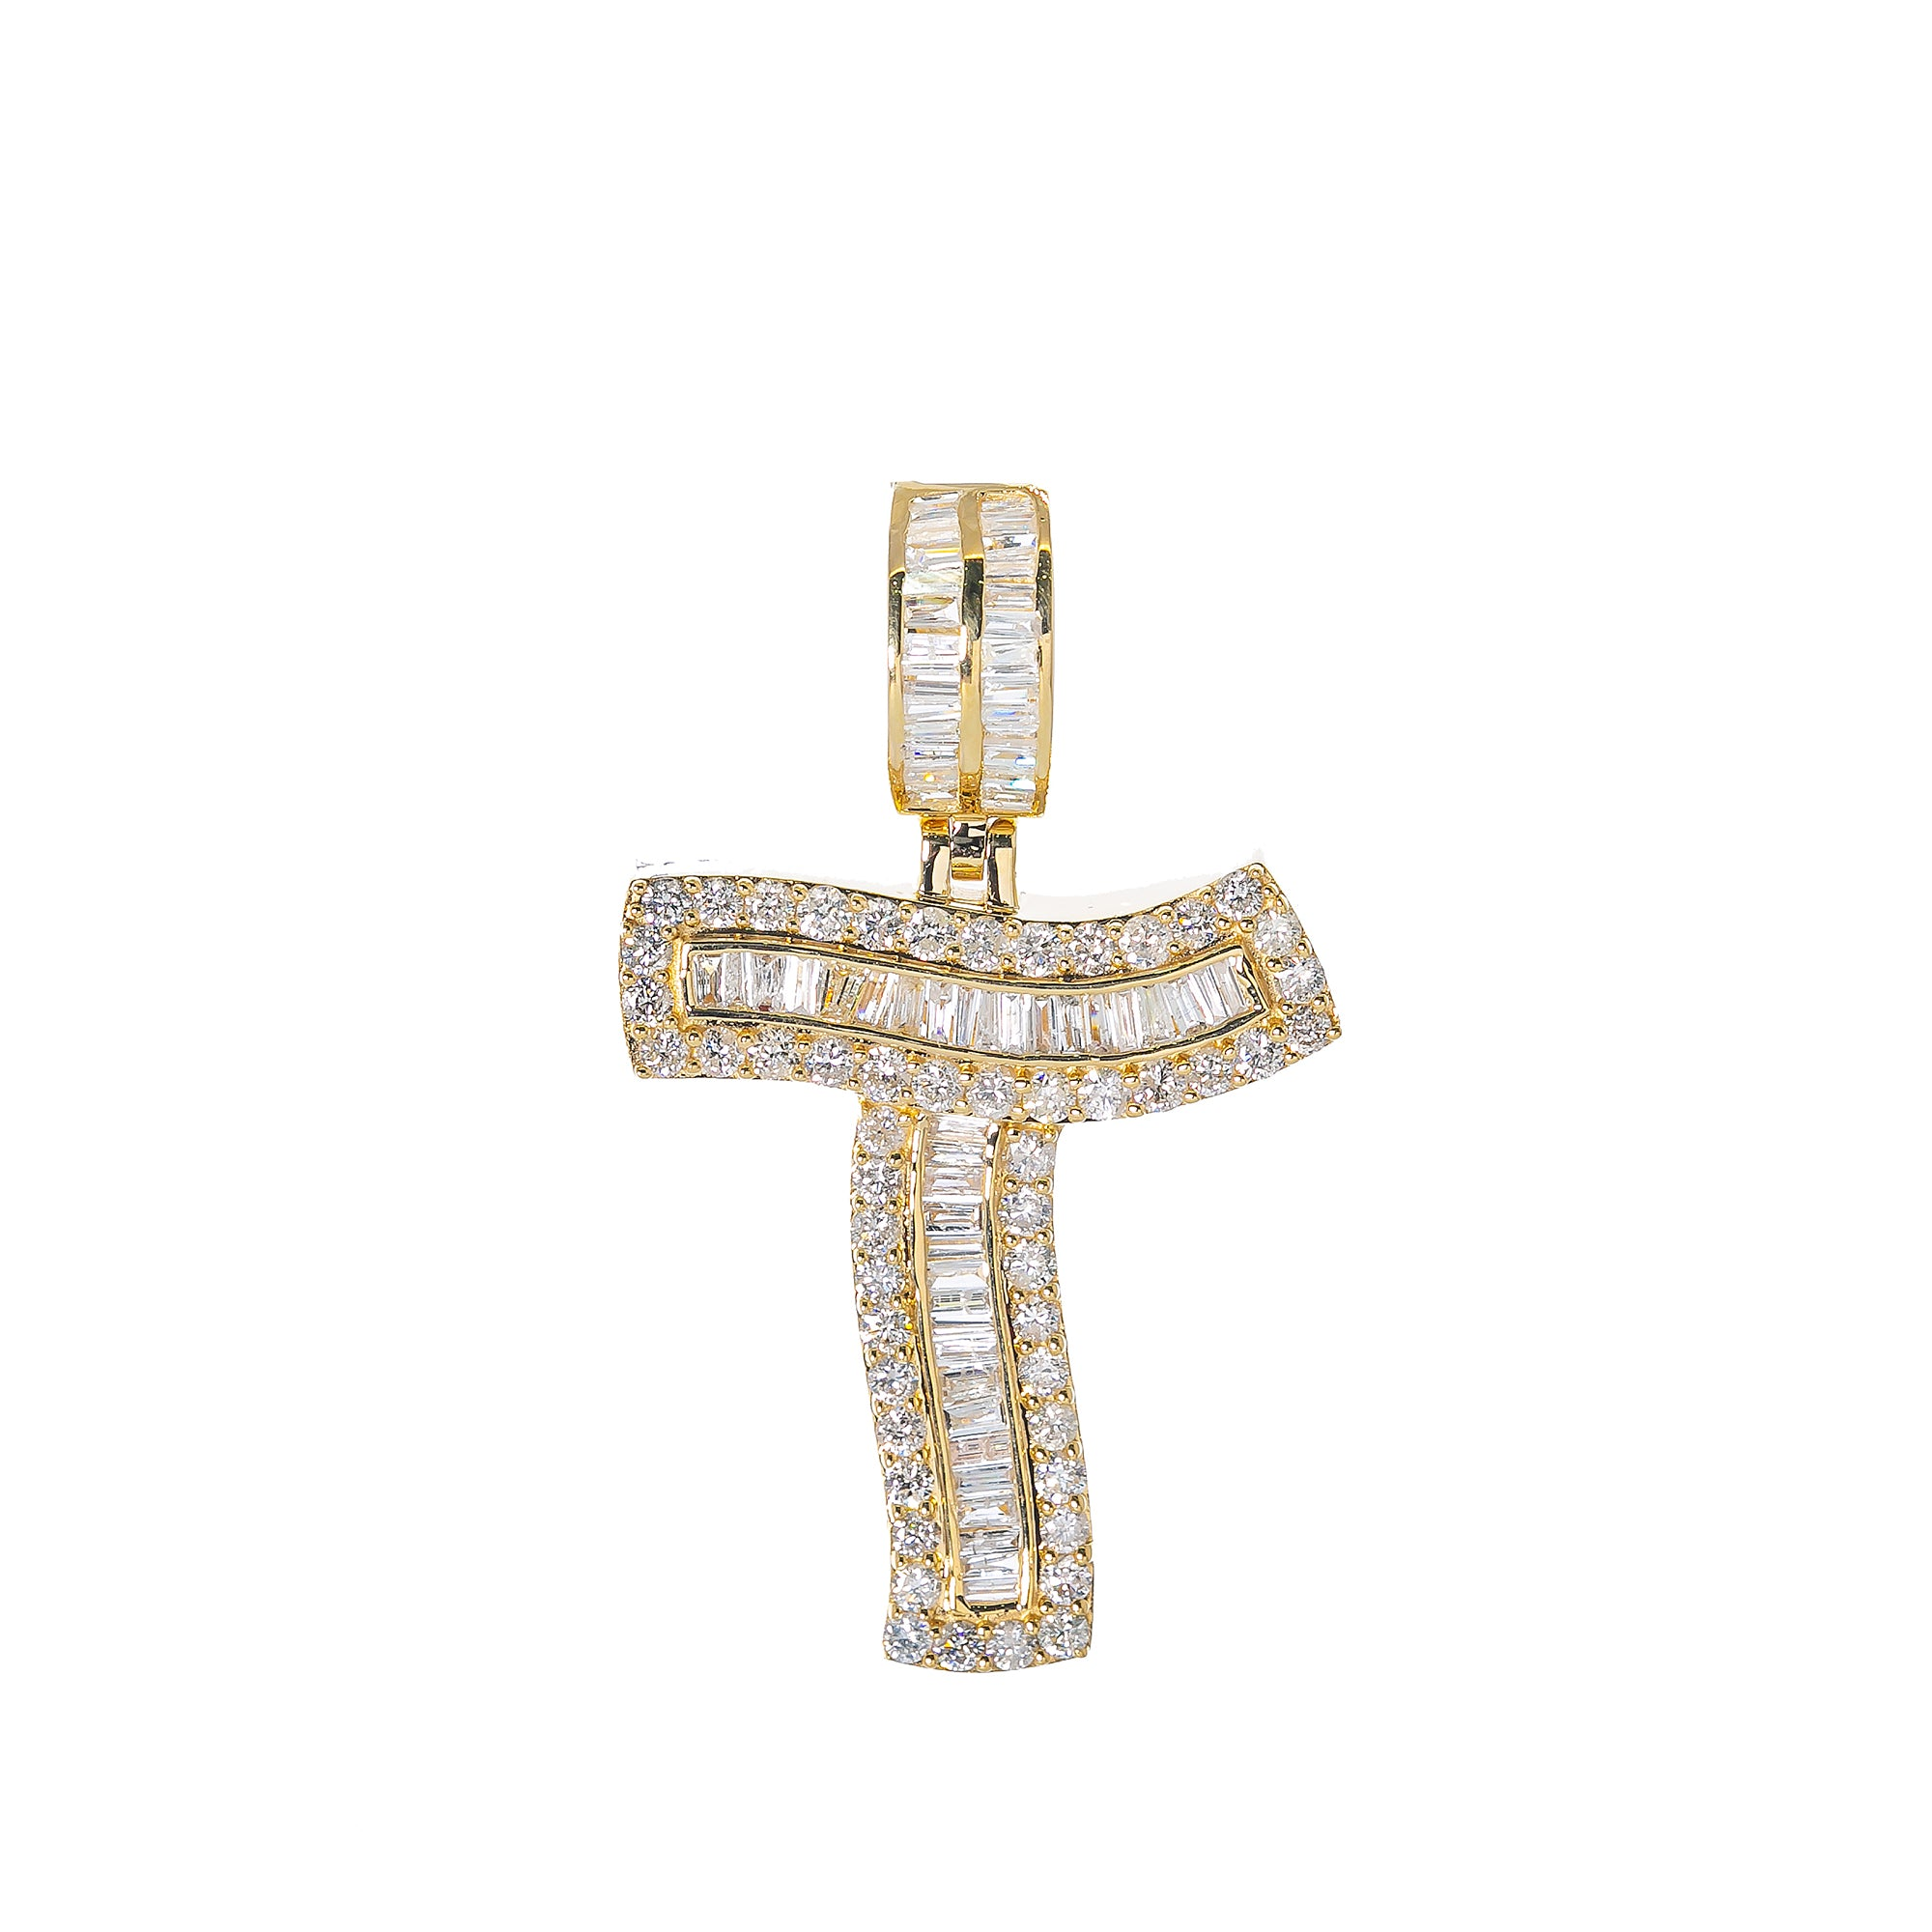 14K YELLOW GOLD UNISEX LETTER T WITH 1.77 CT DIAMONDS